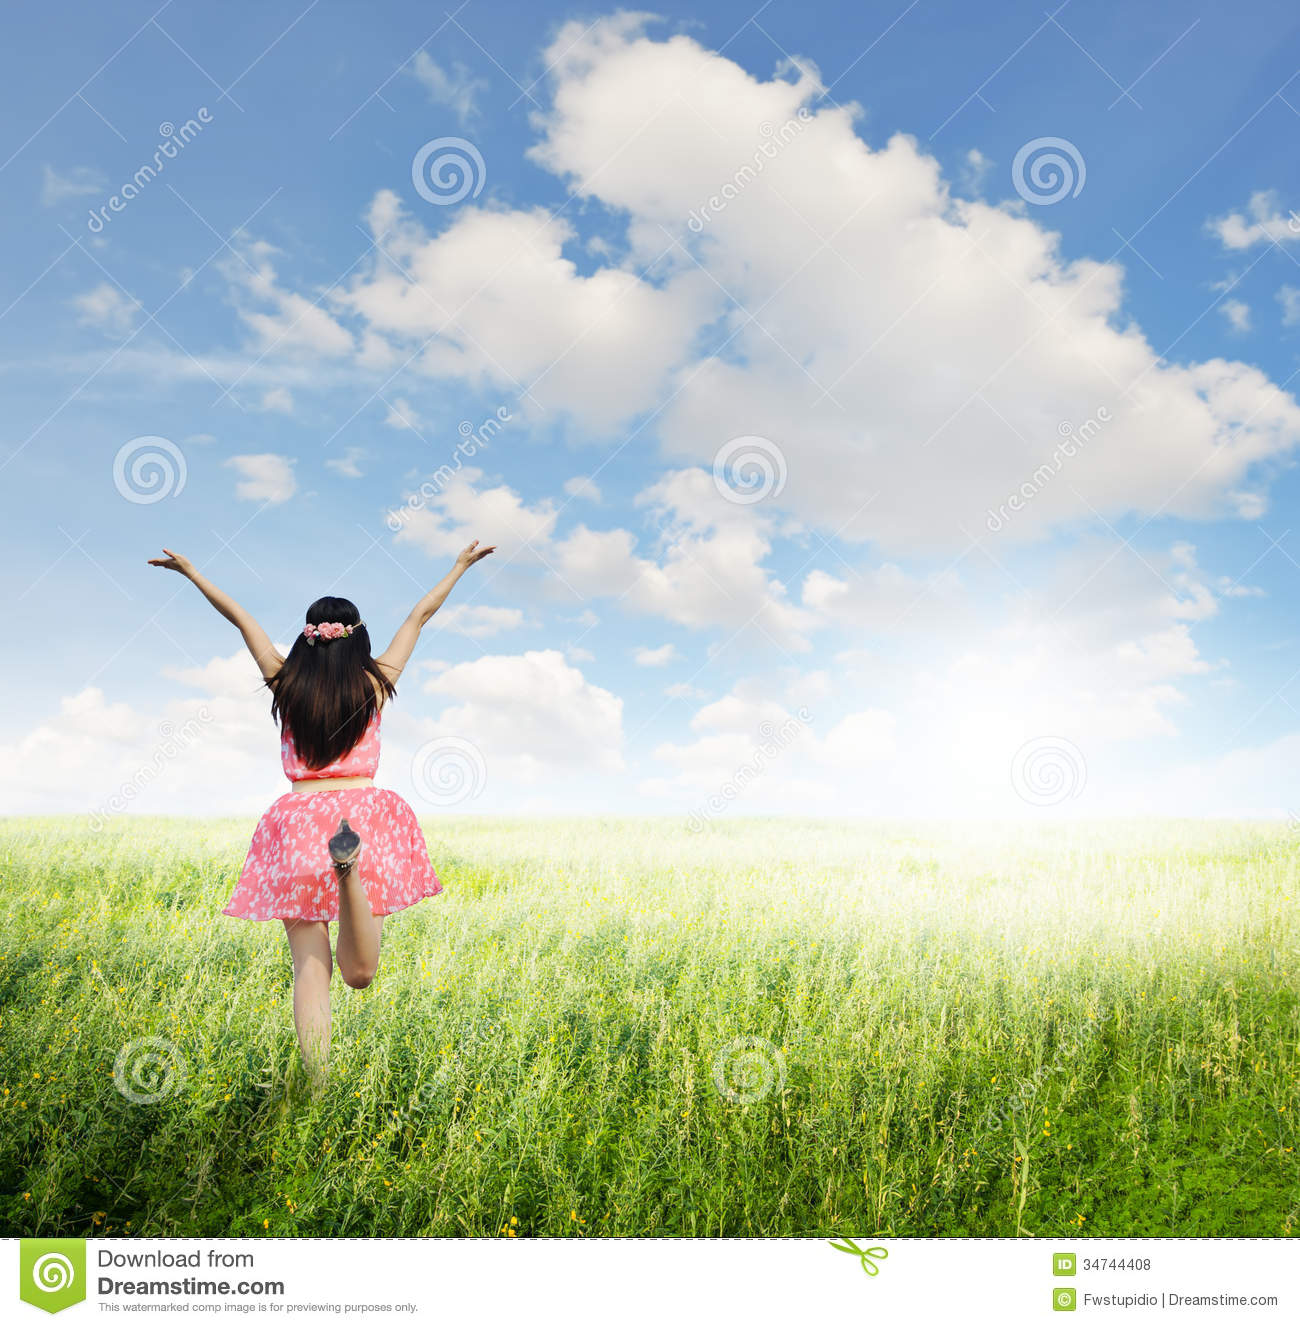 happy-woman-jump-green-grass-field-bule-